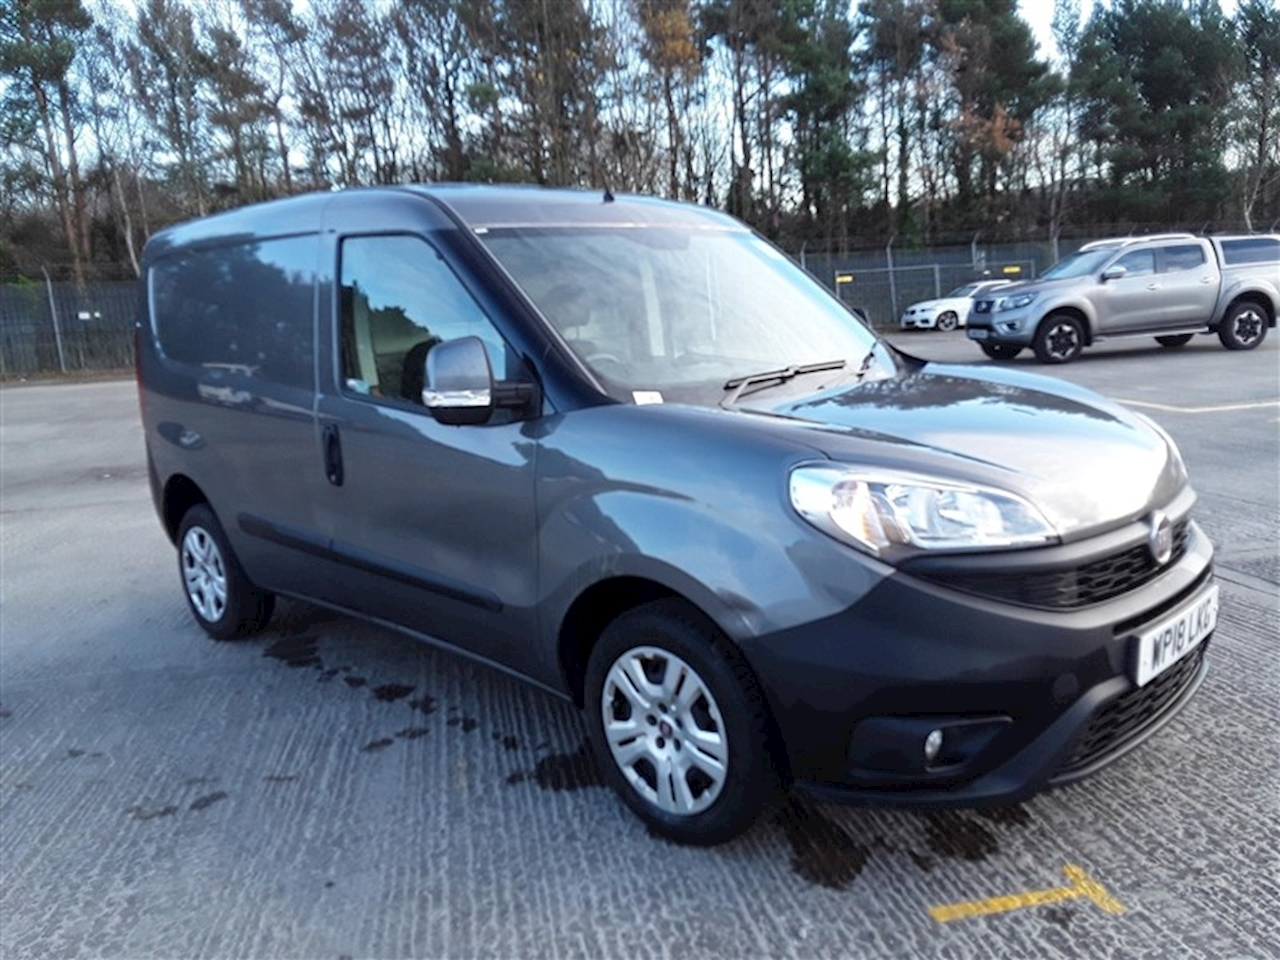 Fiat Doblo Doblo Cargo 1.3 Multijet Ii 95hp  Technico 1.3 5dr Panel Van Manual Diesel